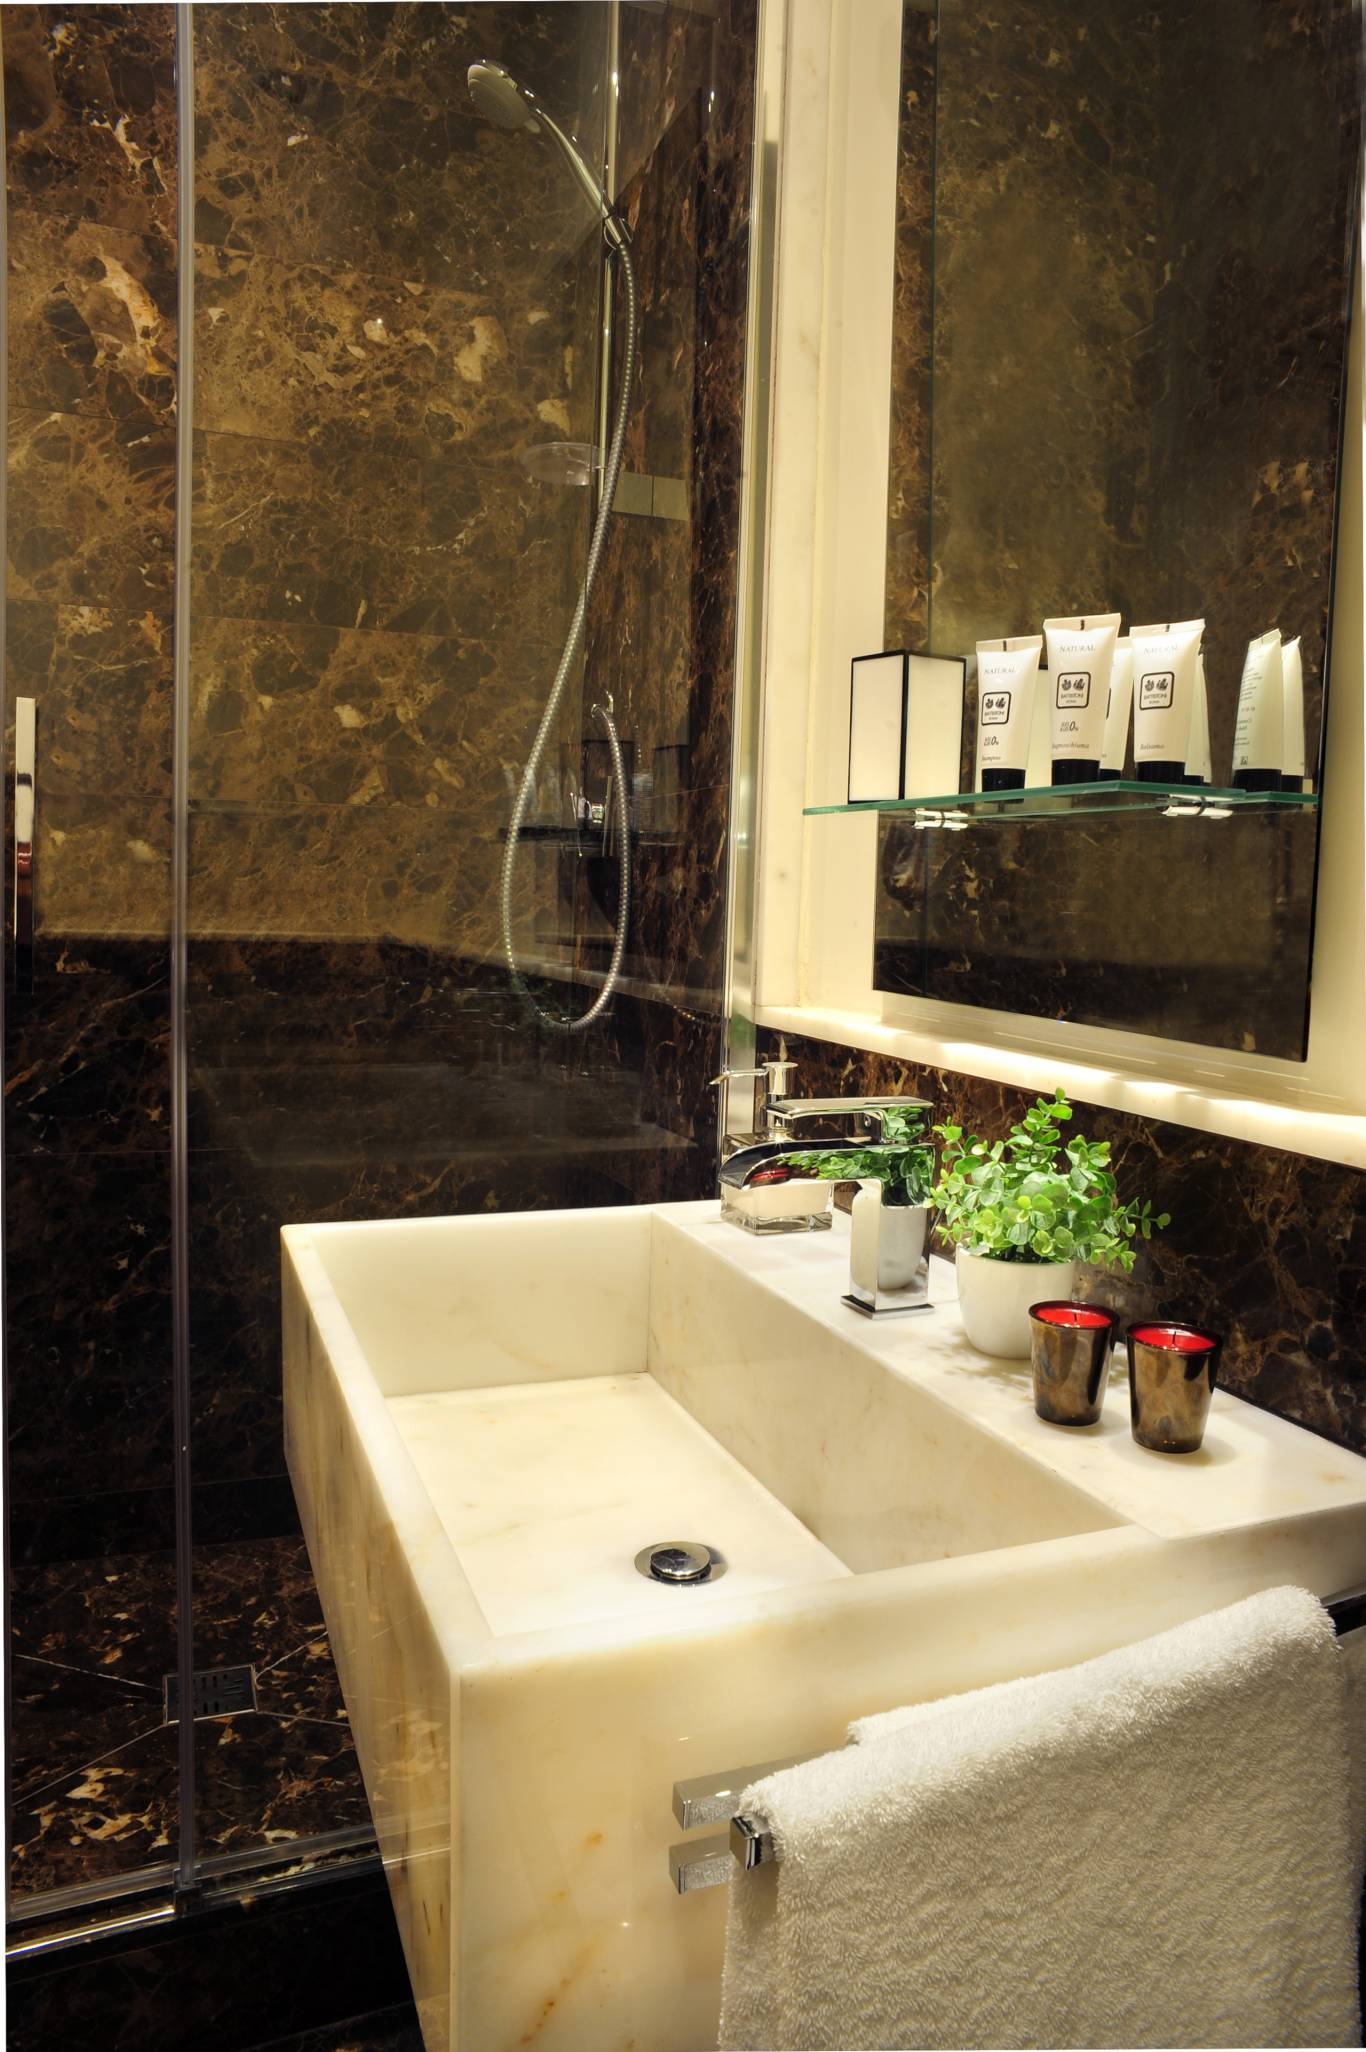 Nerva-Boutique-Hotel-bathroom-12